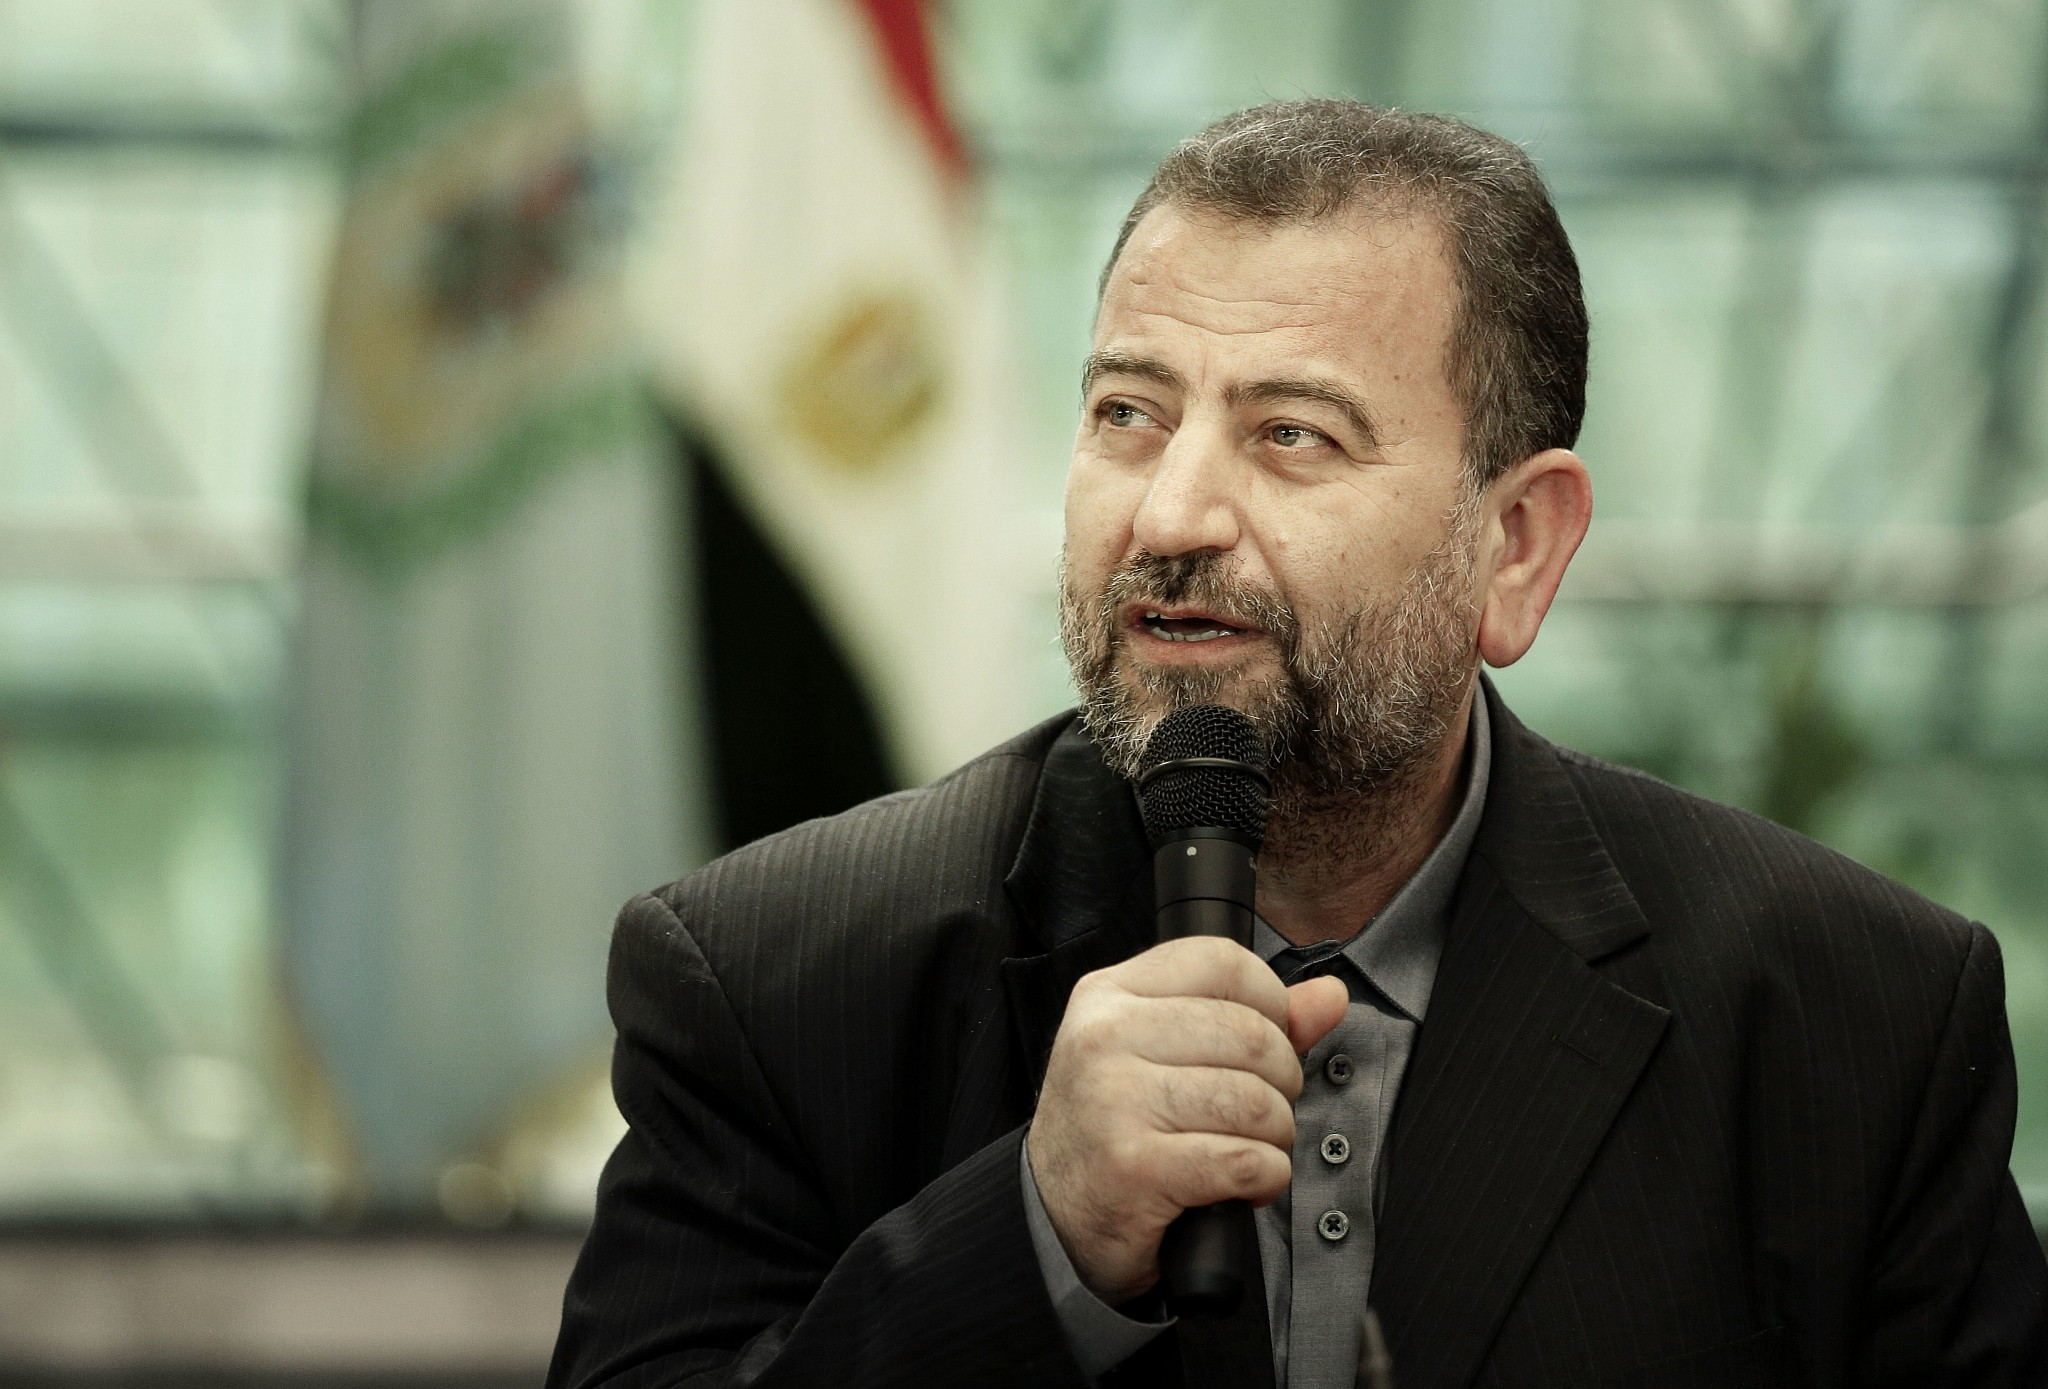 Hamas: Unity deal is so we can all 'work together against Zionist enterprise'